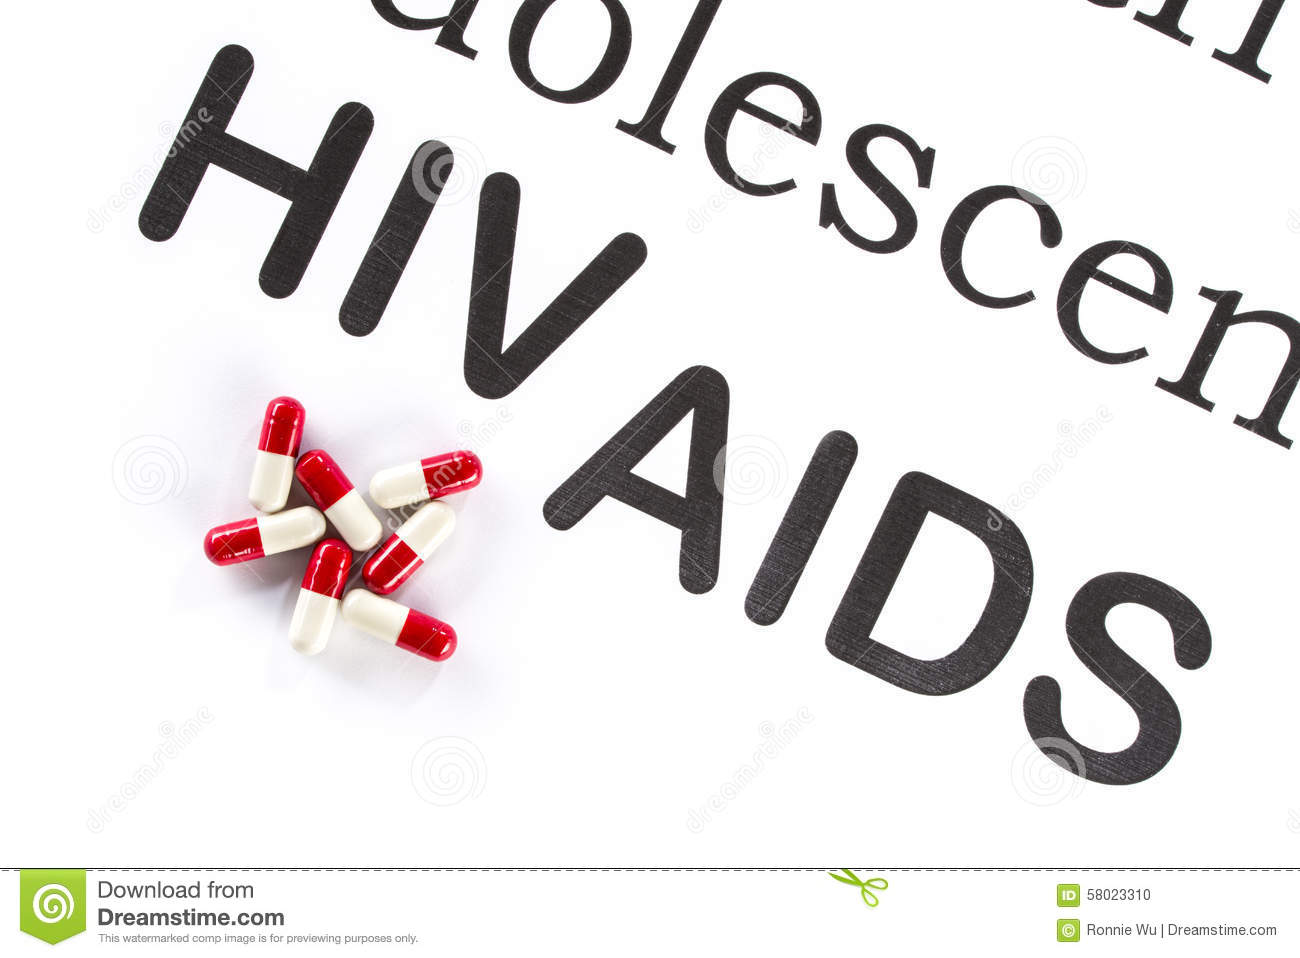 Reproductive health by Adolescent, AIDS, HIV, medication sicknes